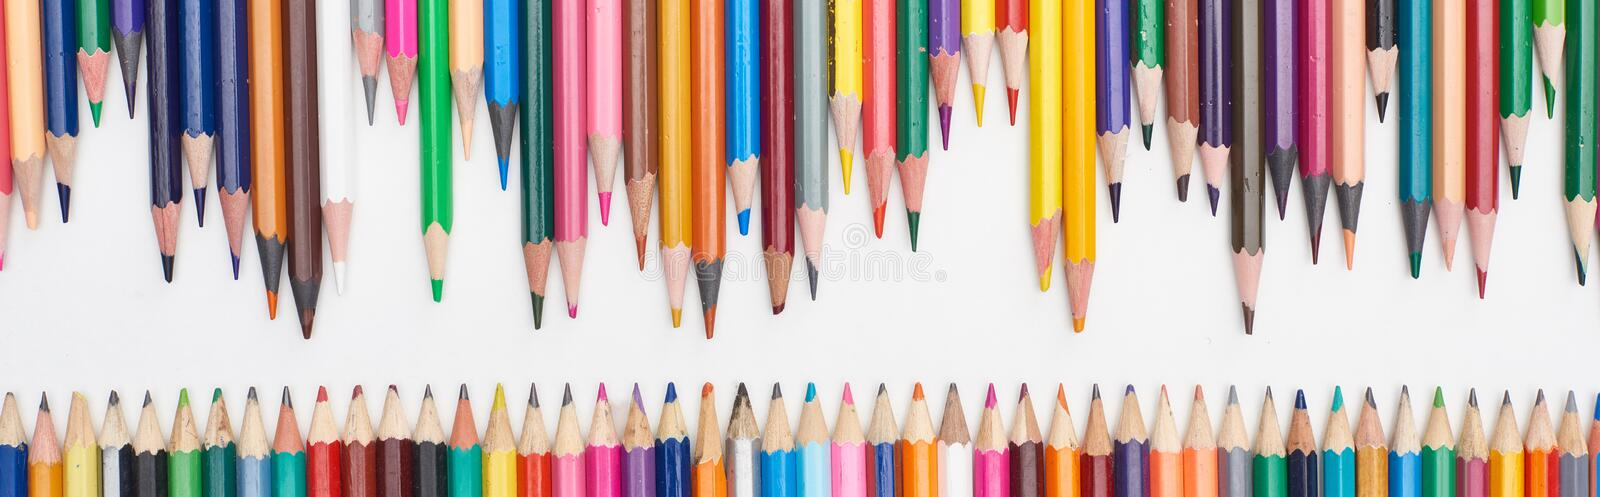 Panoramic shot of rows of sharpened color pencils. Panoramic shot of rows of sharpened color pencils,stock photo royalty free stock photo